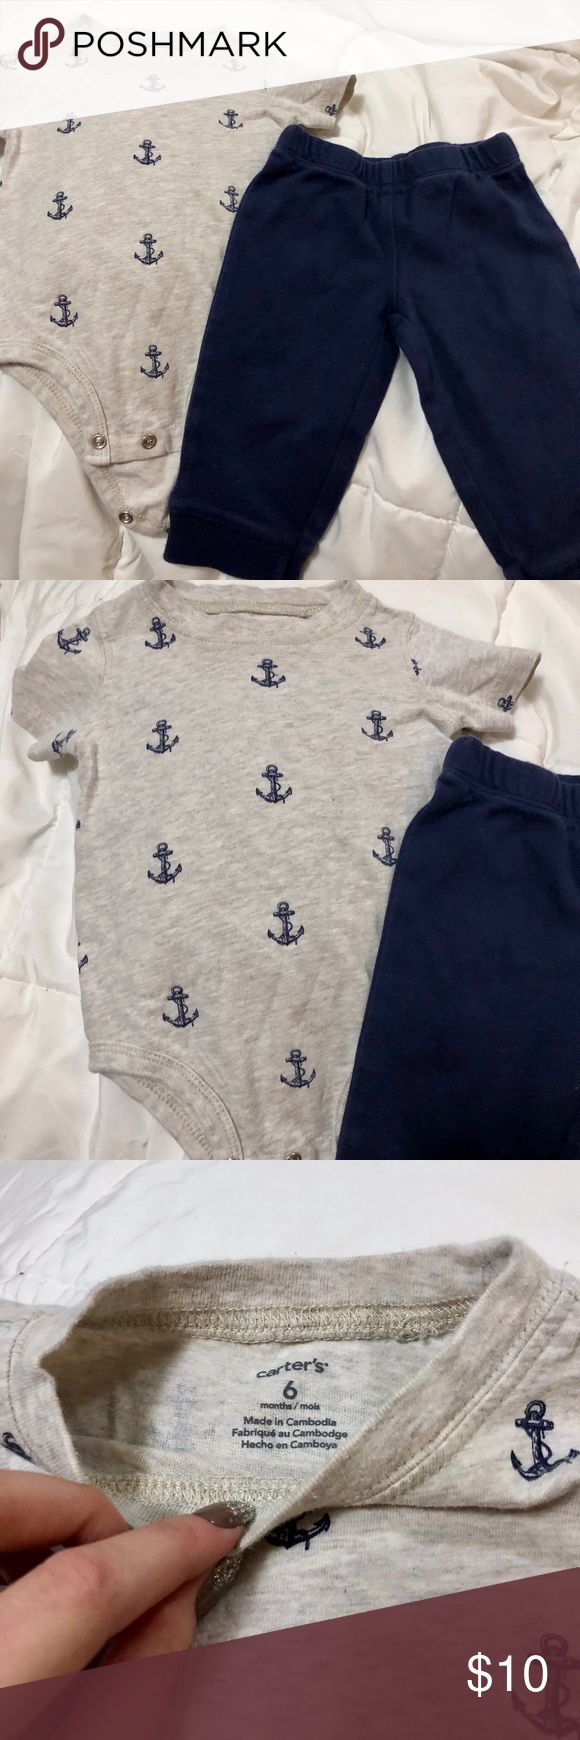 Anchor Outfit bundle of 2 Size 6 months from Carter's. anchor pattern onesie and blue sweatpants. Carter's Matching Sets